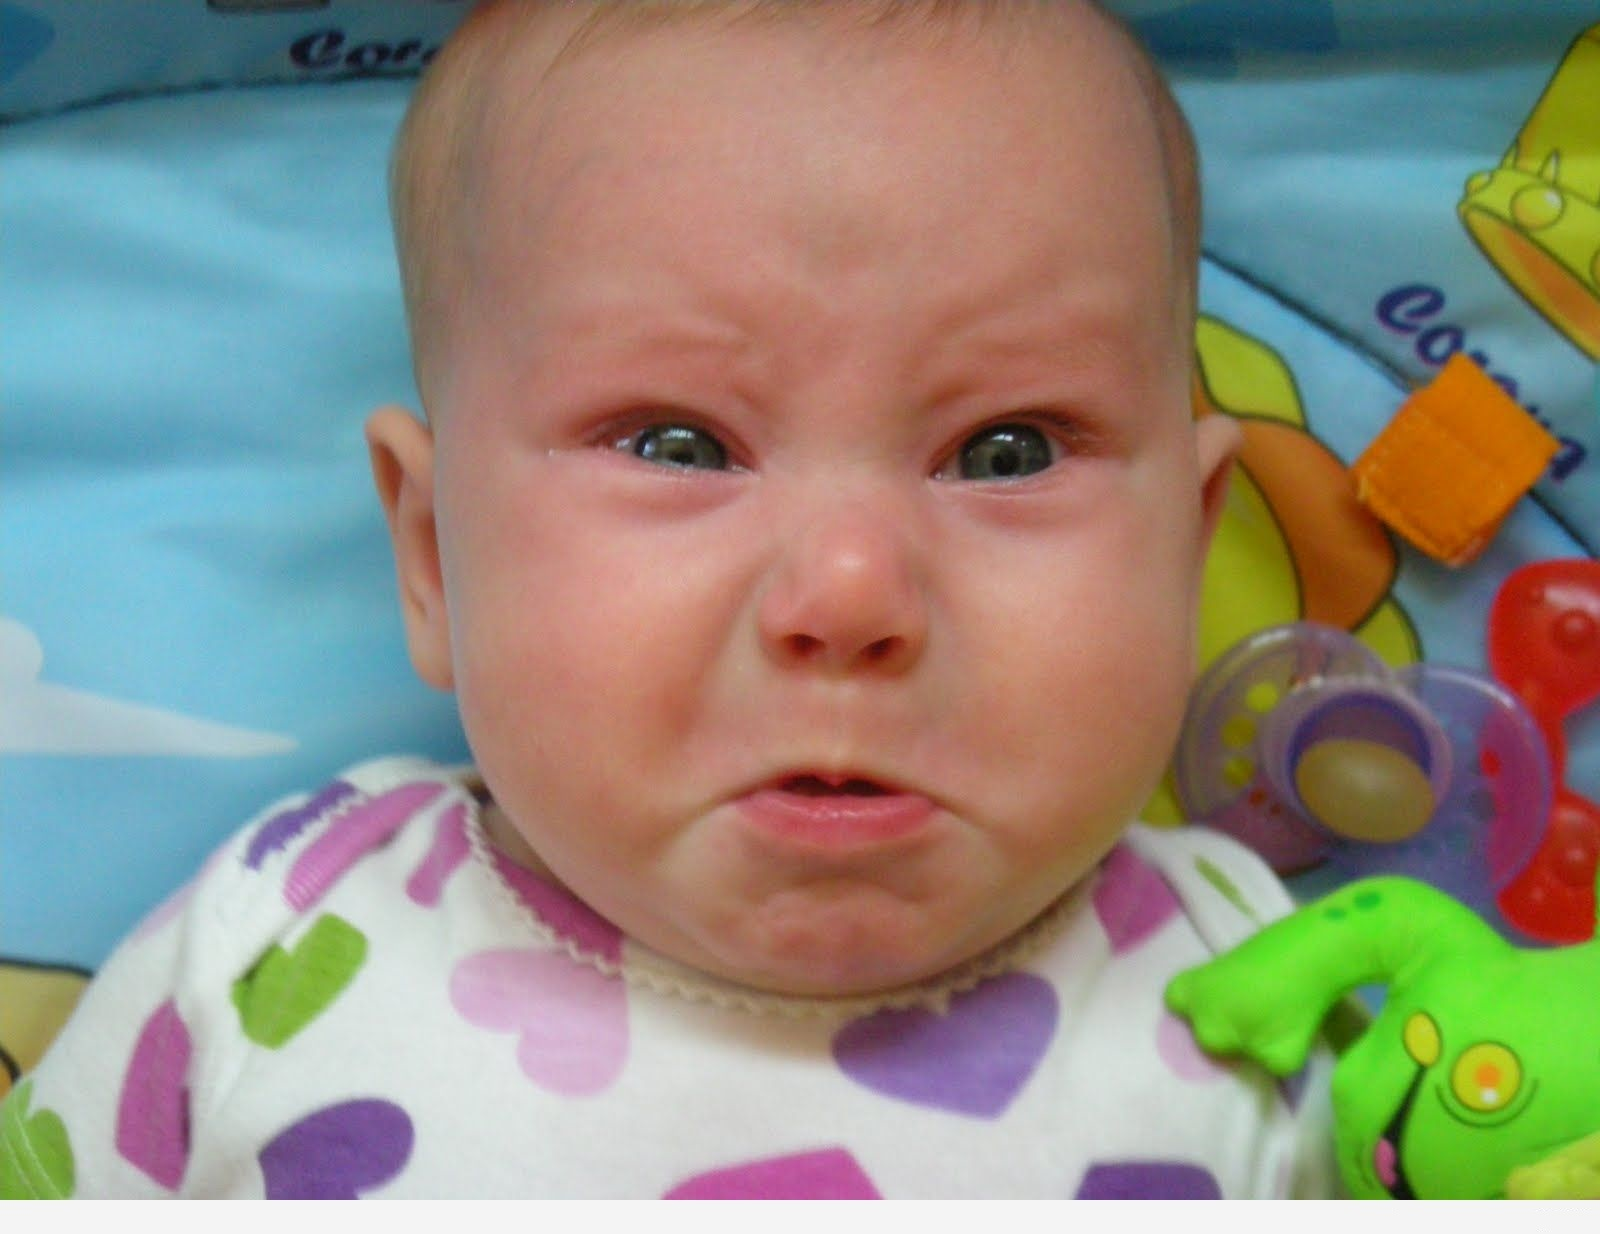 angry baby faces - photo #16